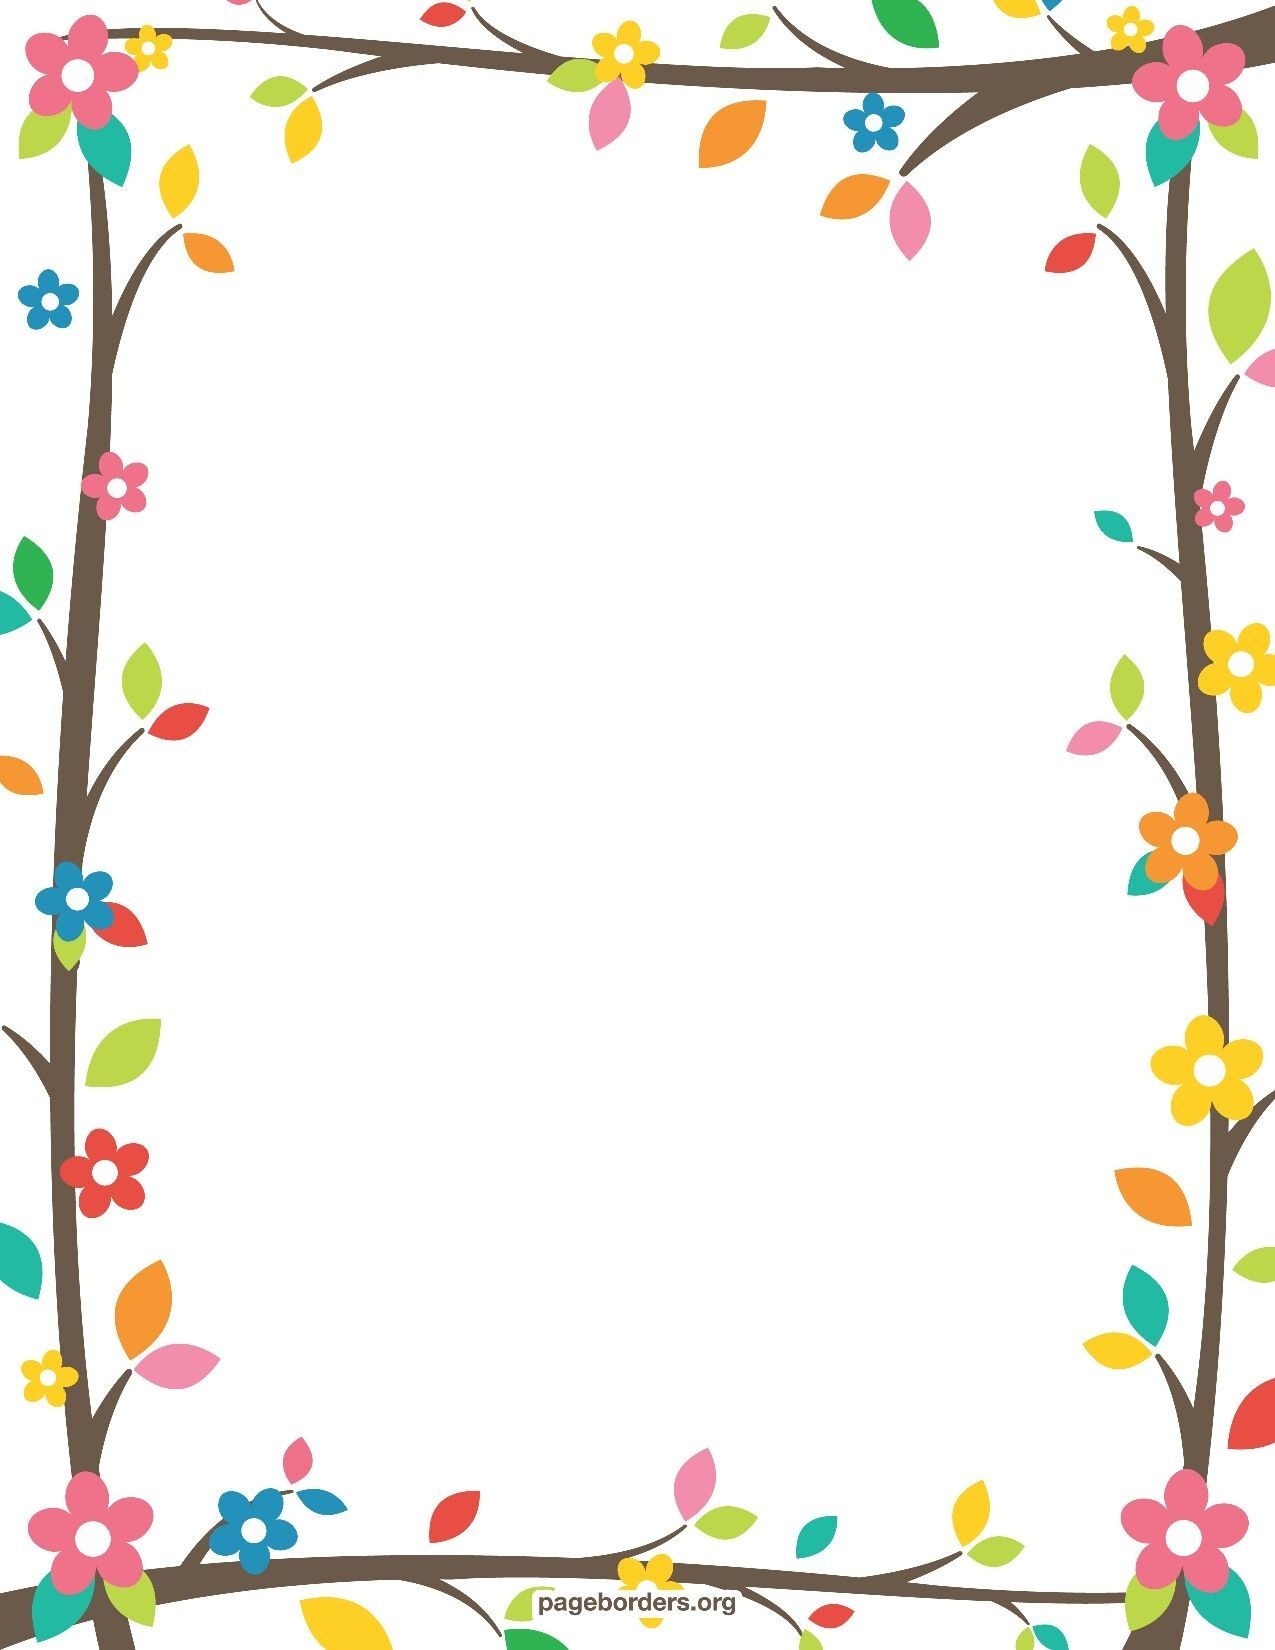 Resultado De Imagen Para Free Printable Border Designs For Paper - Free Printable Borders